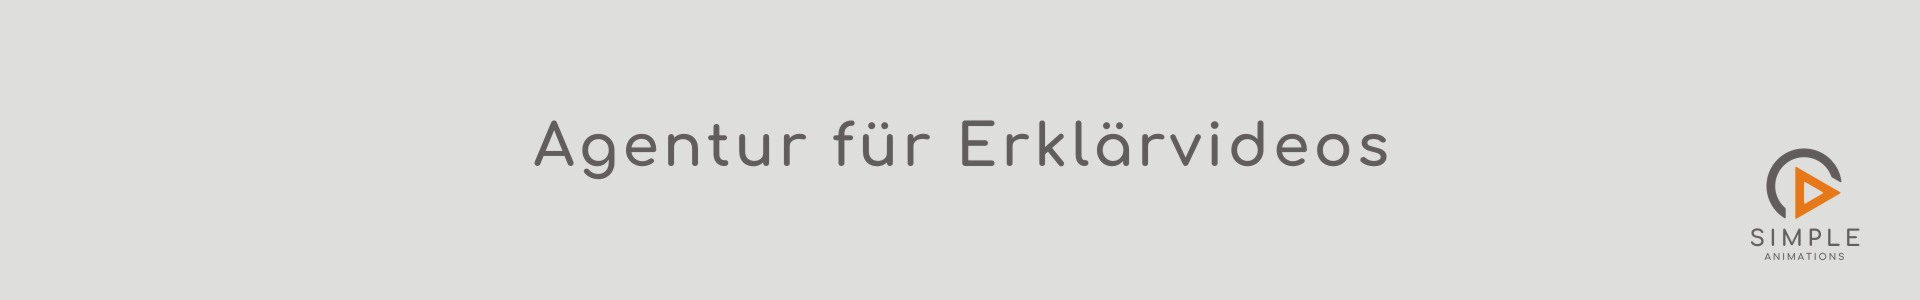 Agentur fuer Erklaervideos Simple Animations